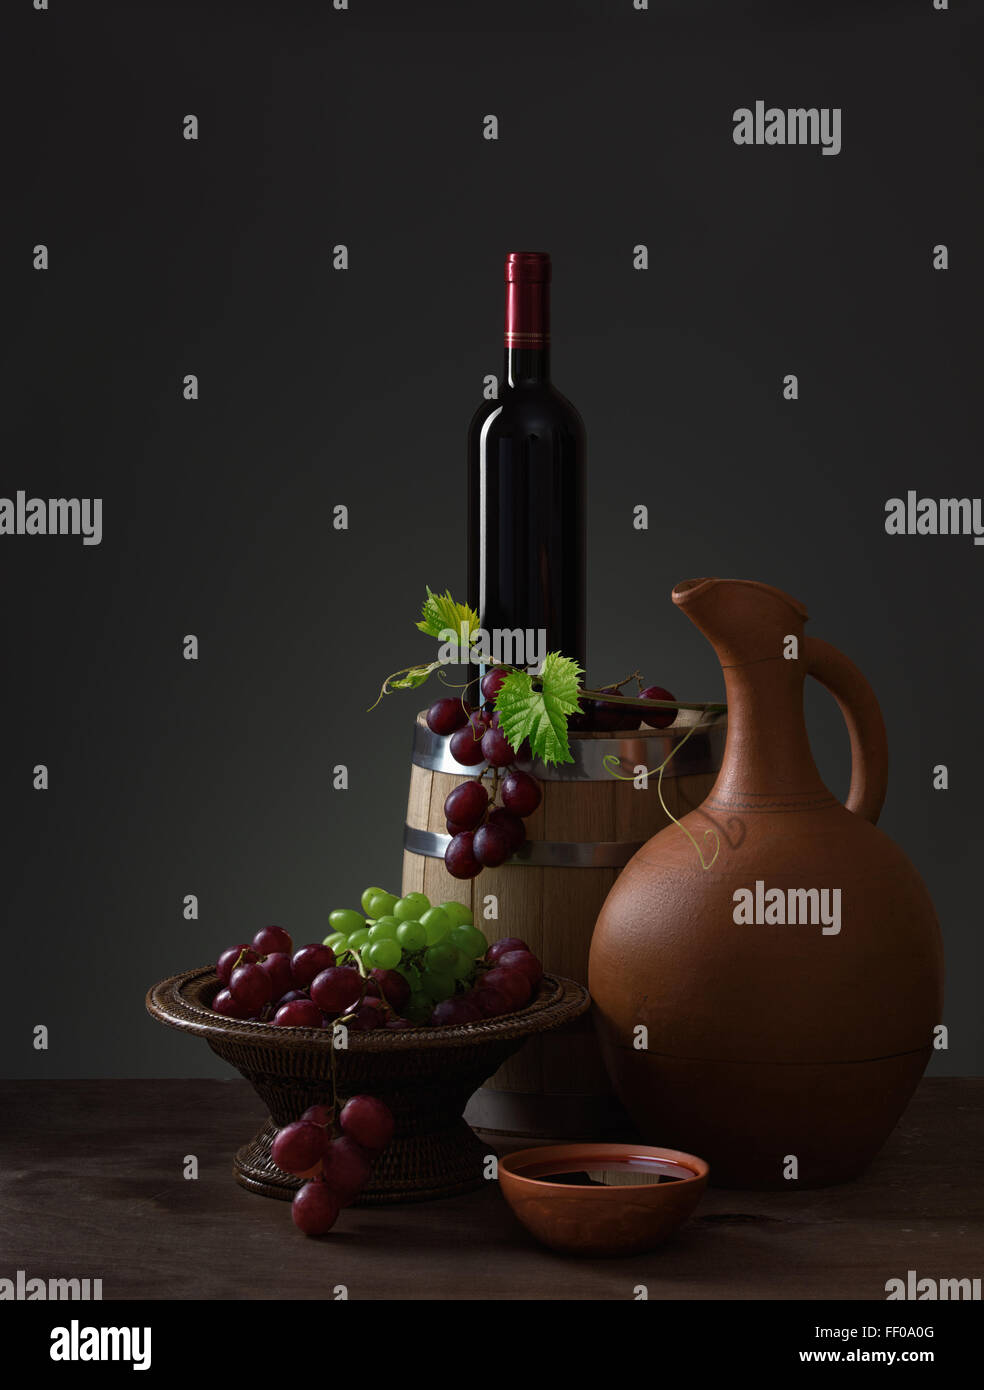 Bottle of red wine, pitcher, grapes and wooden barrel - Stock Image